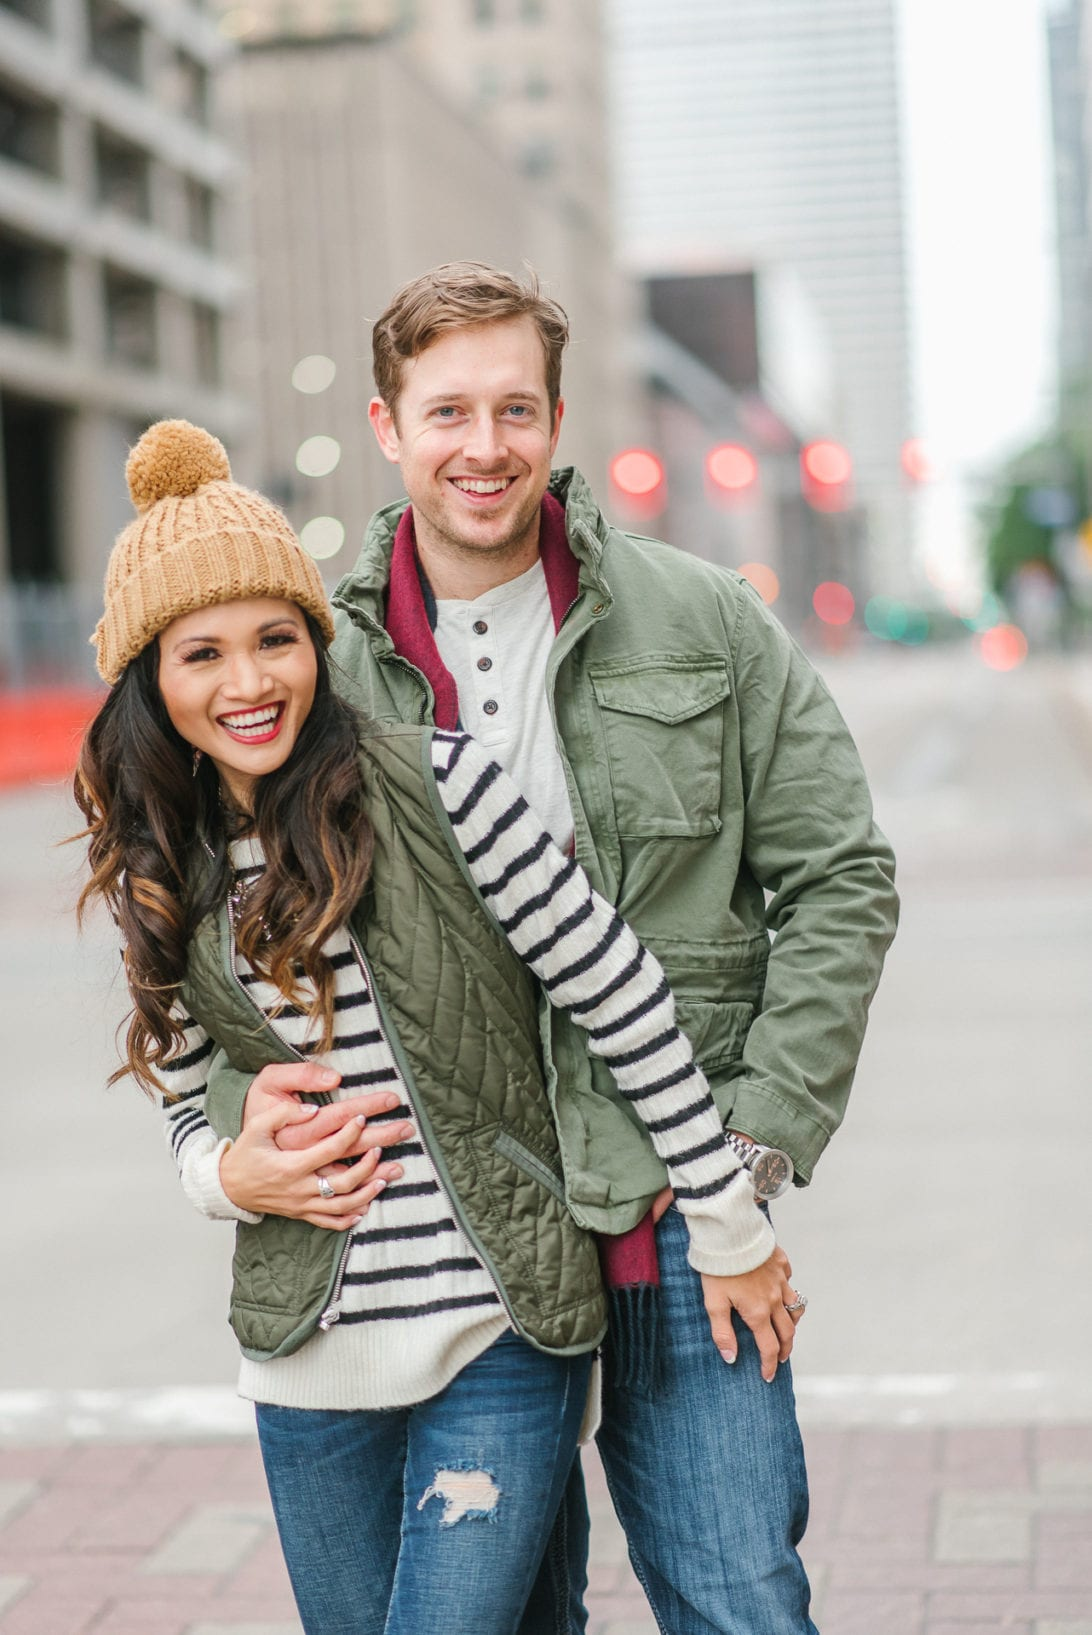 old navy, old navy clothes, old navy style, #holiyay, #oldnavystyle, family style, winter style, snow outfit, winter outfit, family outfits, family winter outfits, utility jacket, quilted vest, striped sweater, Cable-Knit Pom-Pom Beanie , pom pom. beanie, Jandon Bootie, muk luk, snow shoes, hiking boots, boy fashion, toddler fashion